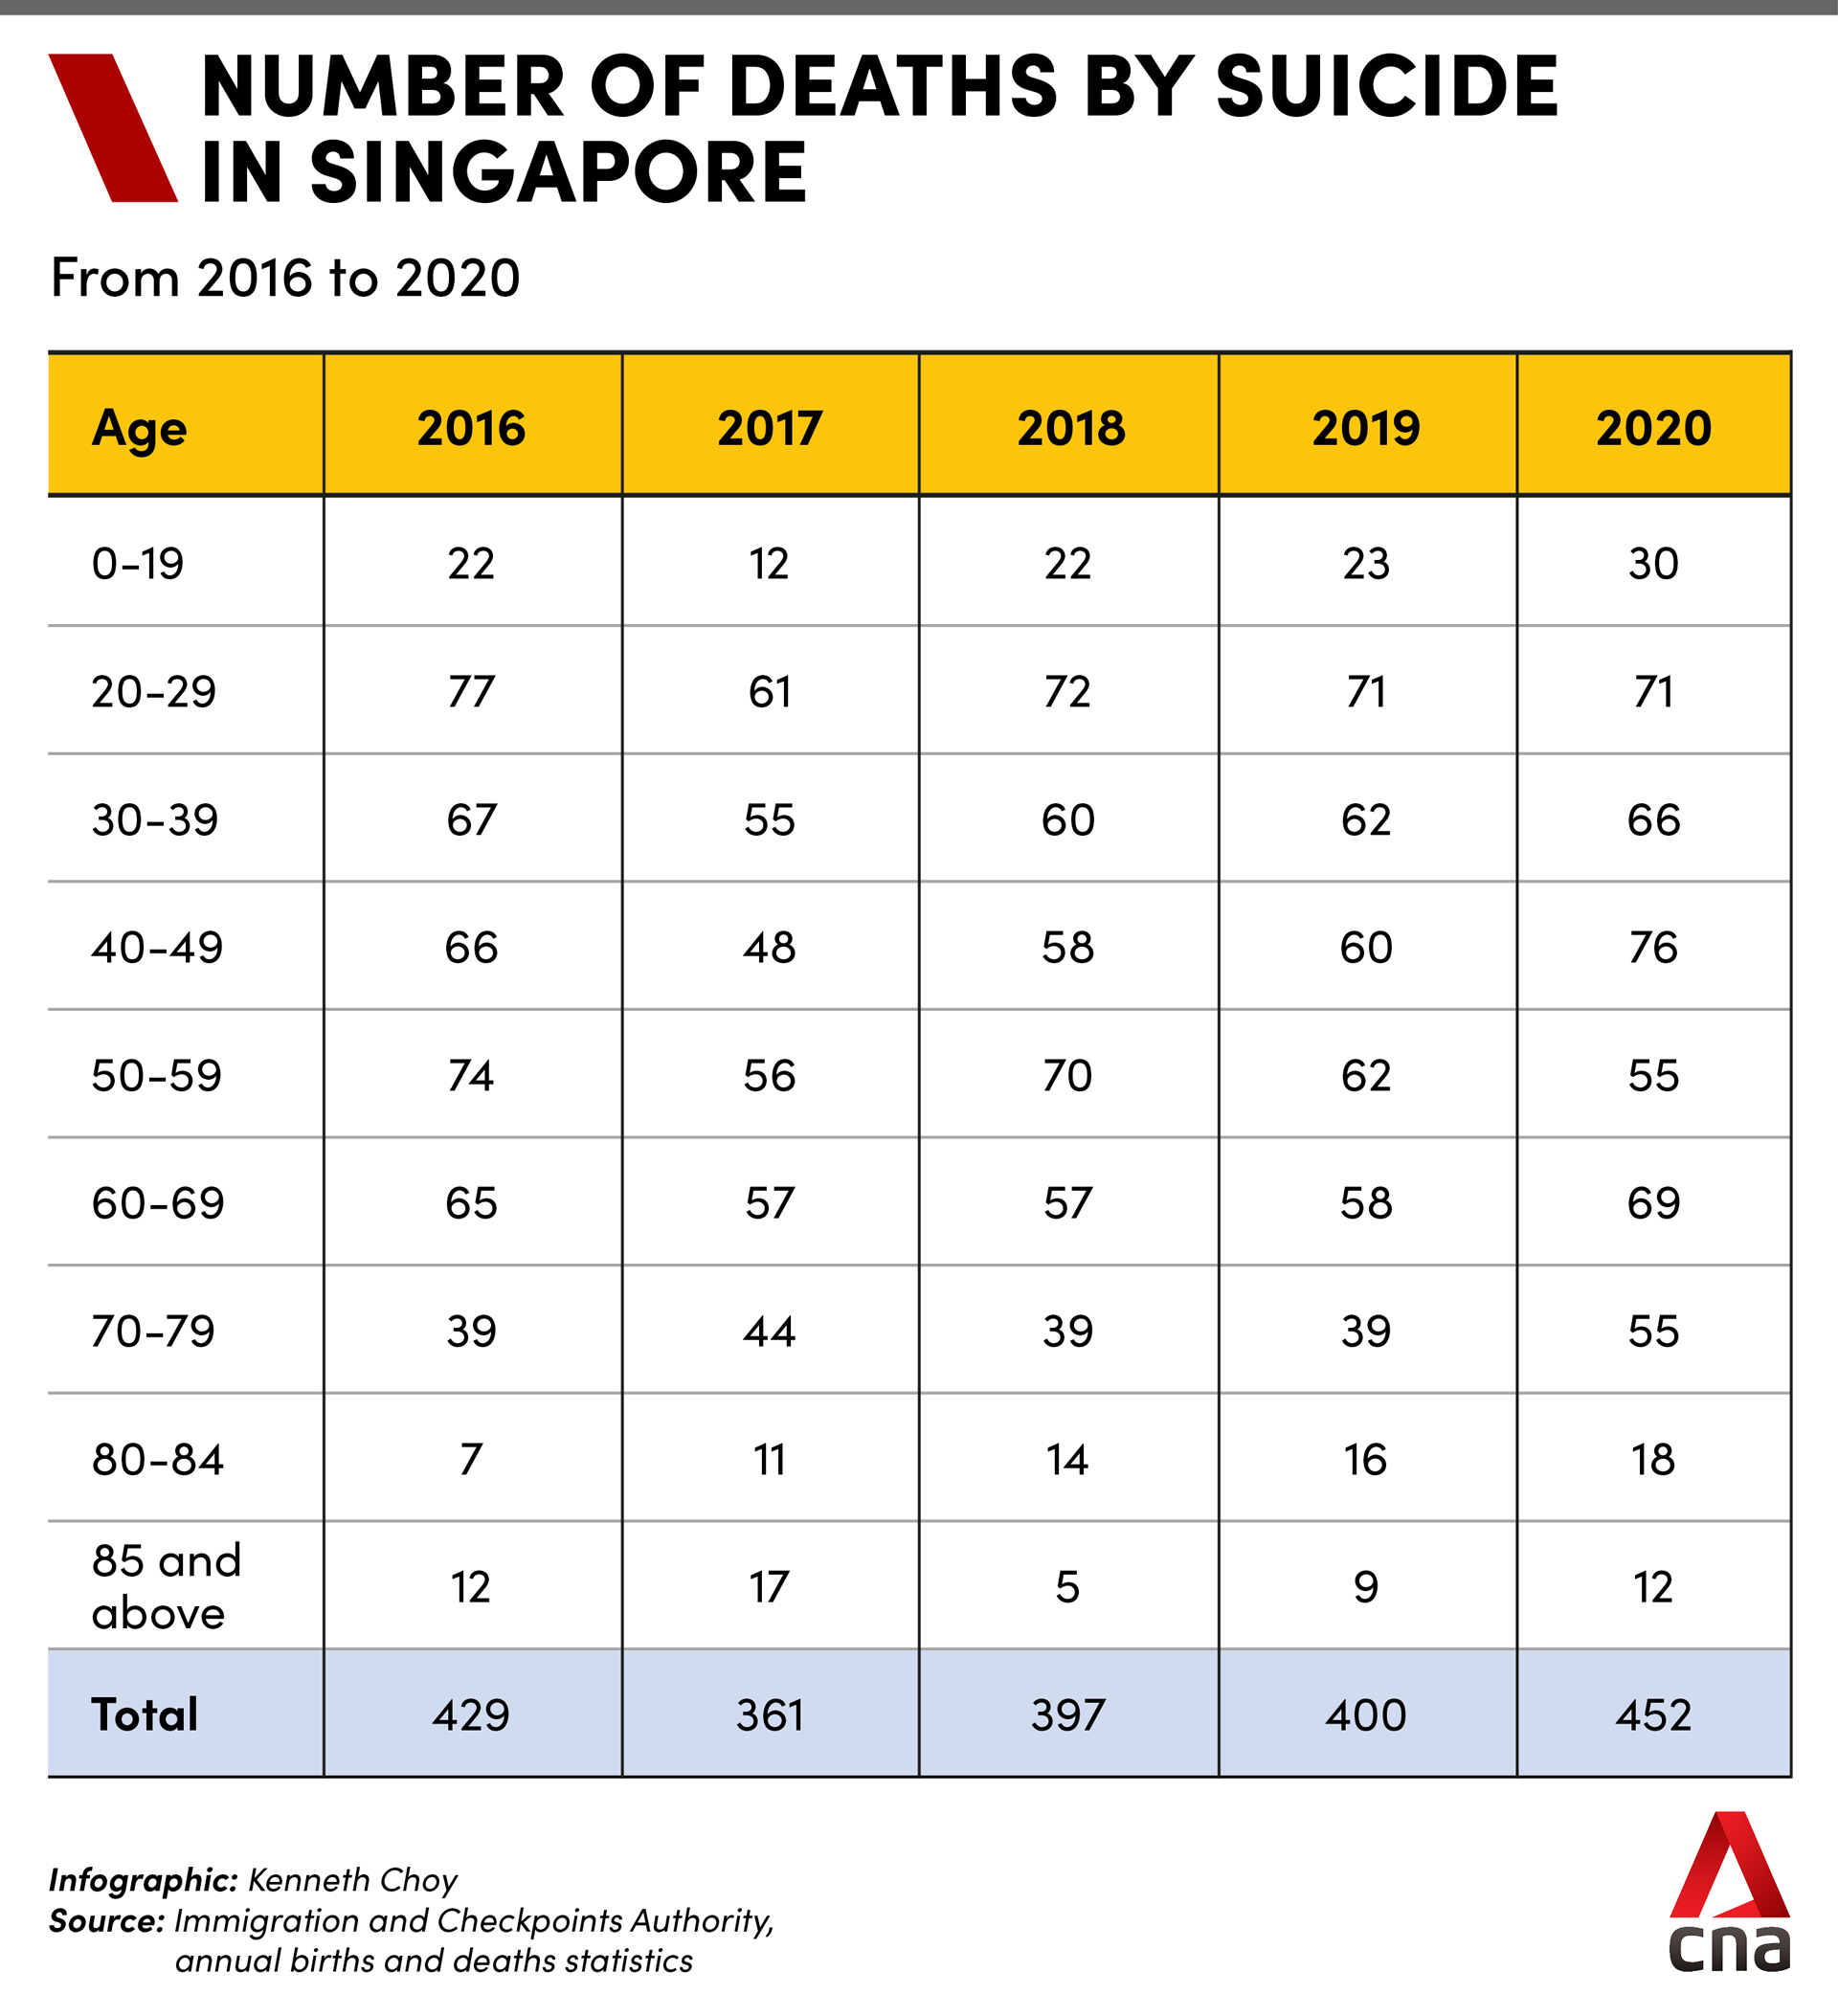 Deaths by suicide in Singapore